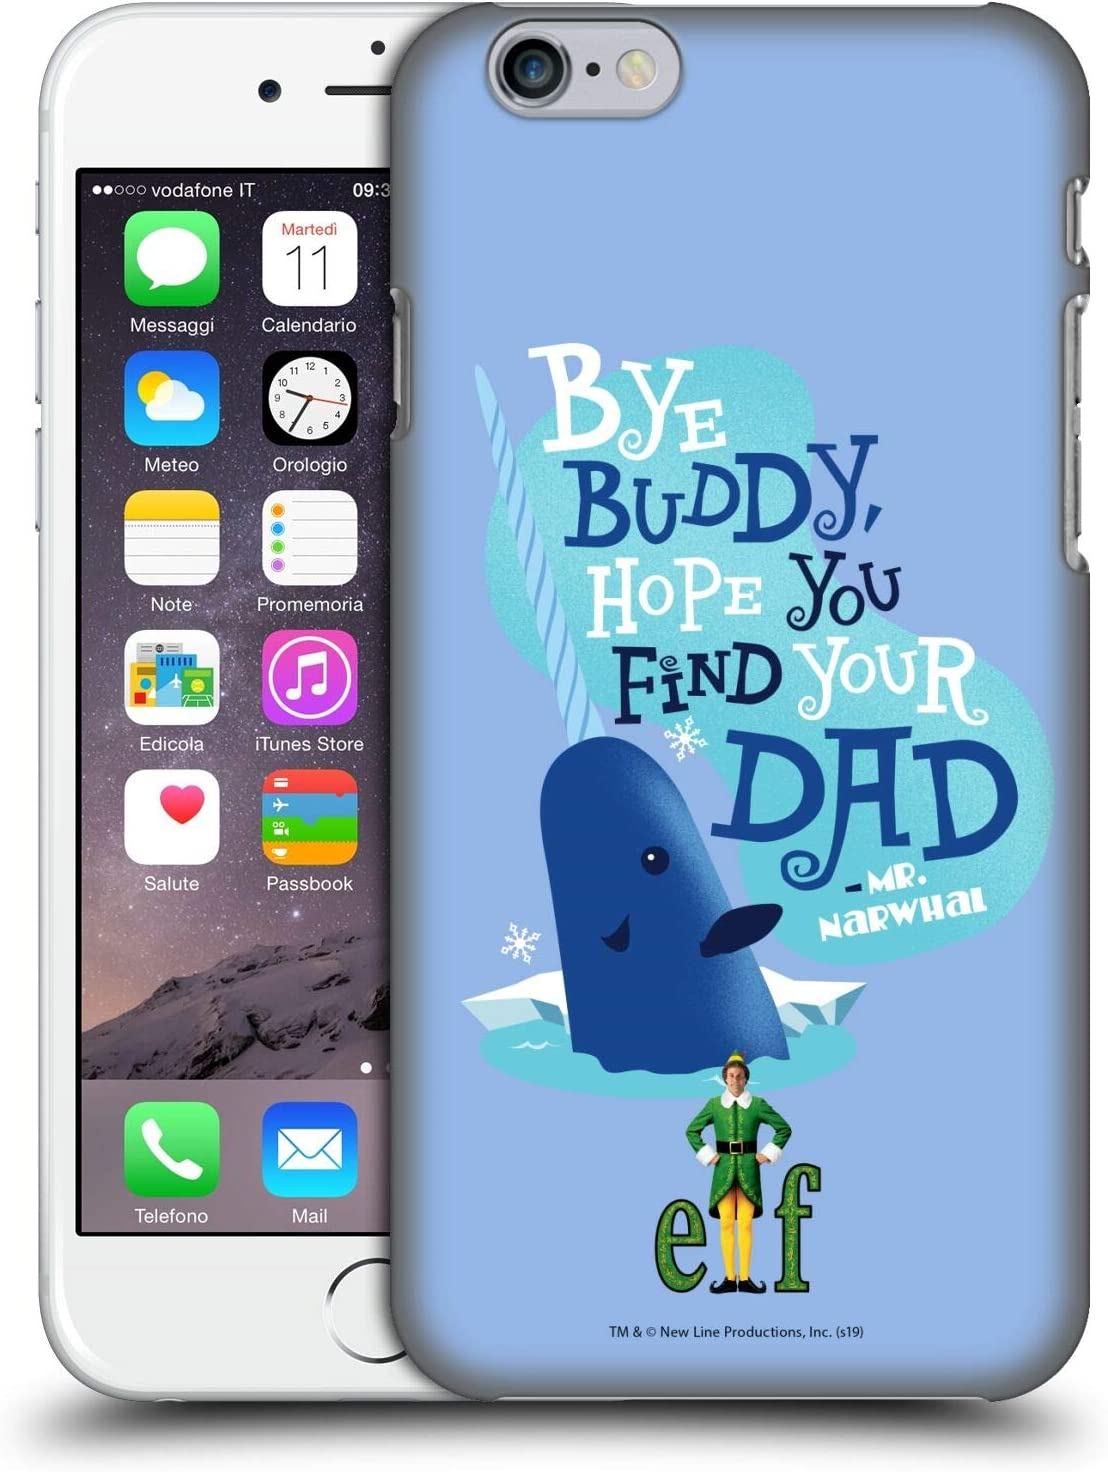 Bye Buddy Hope You Find Your Dad 3 iphone case